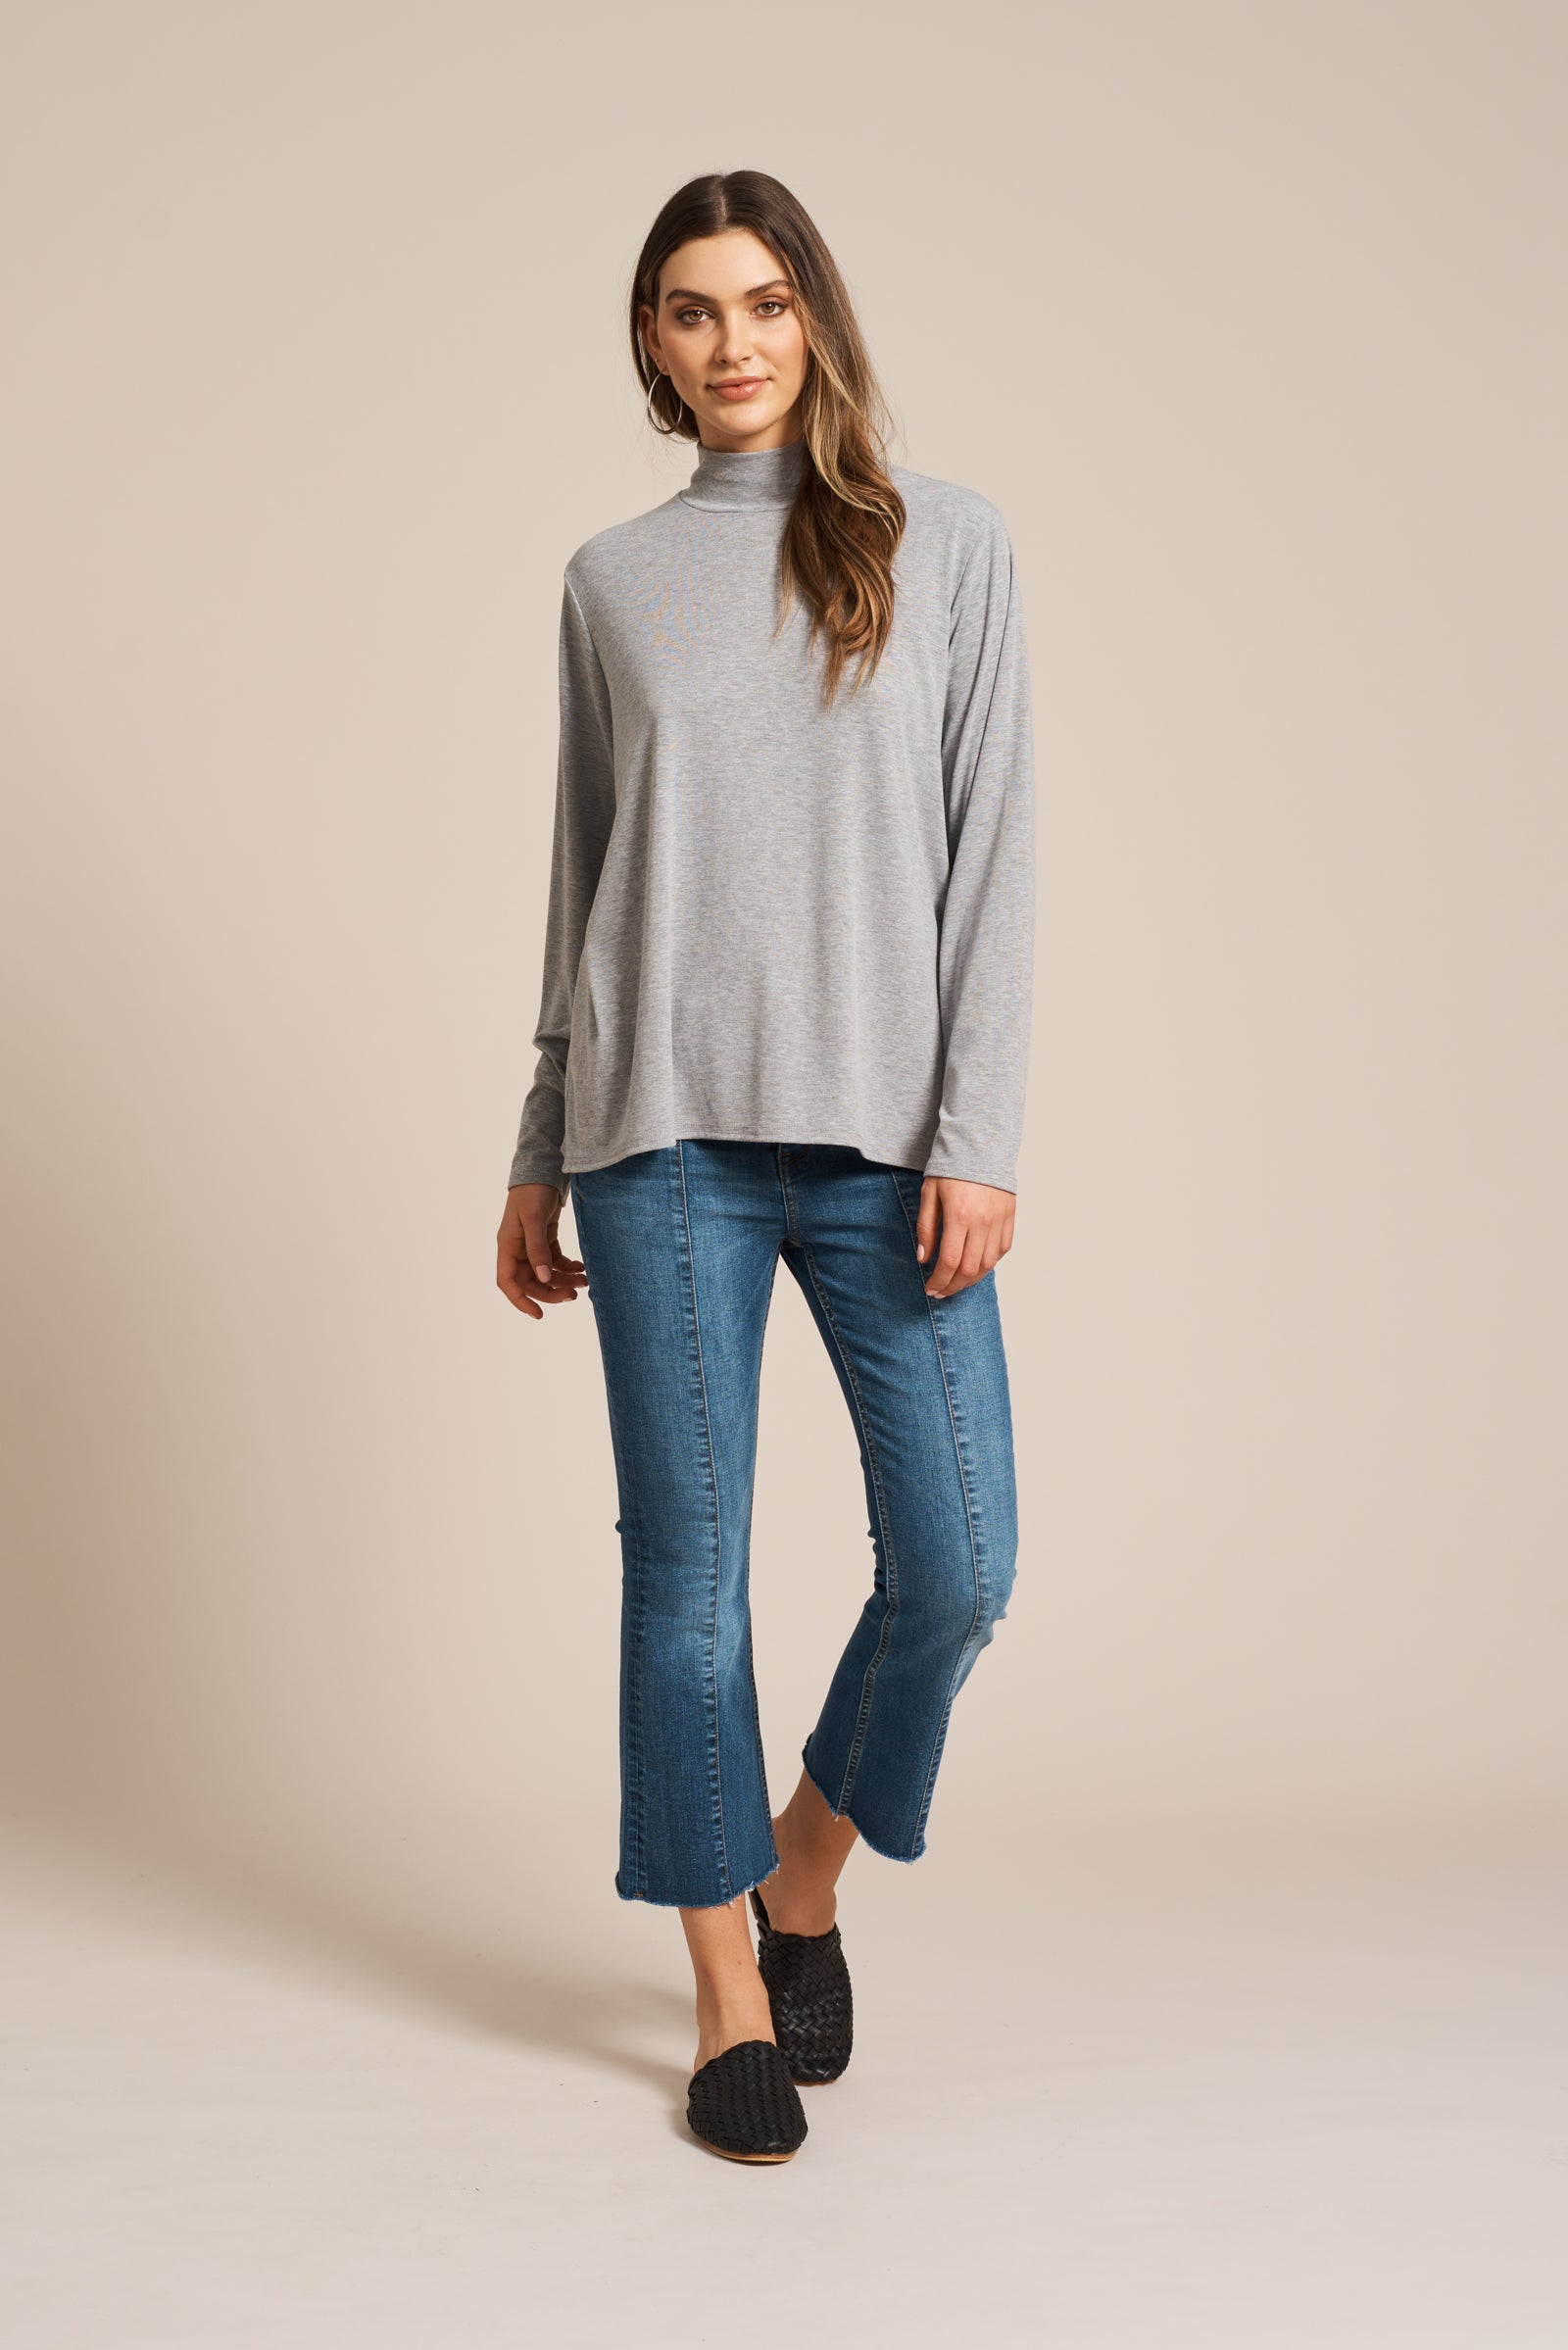 Vera Turtleneck - Marle - eb&ive Clothing - Top L/S